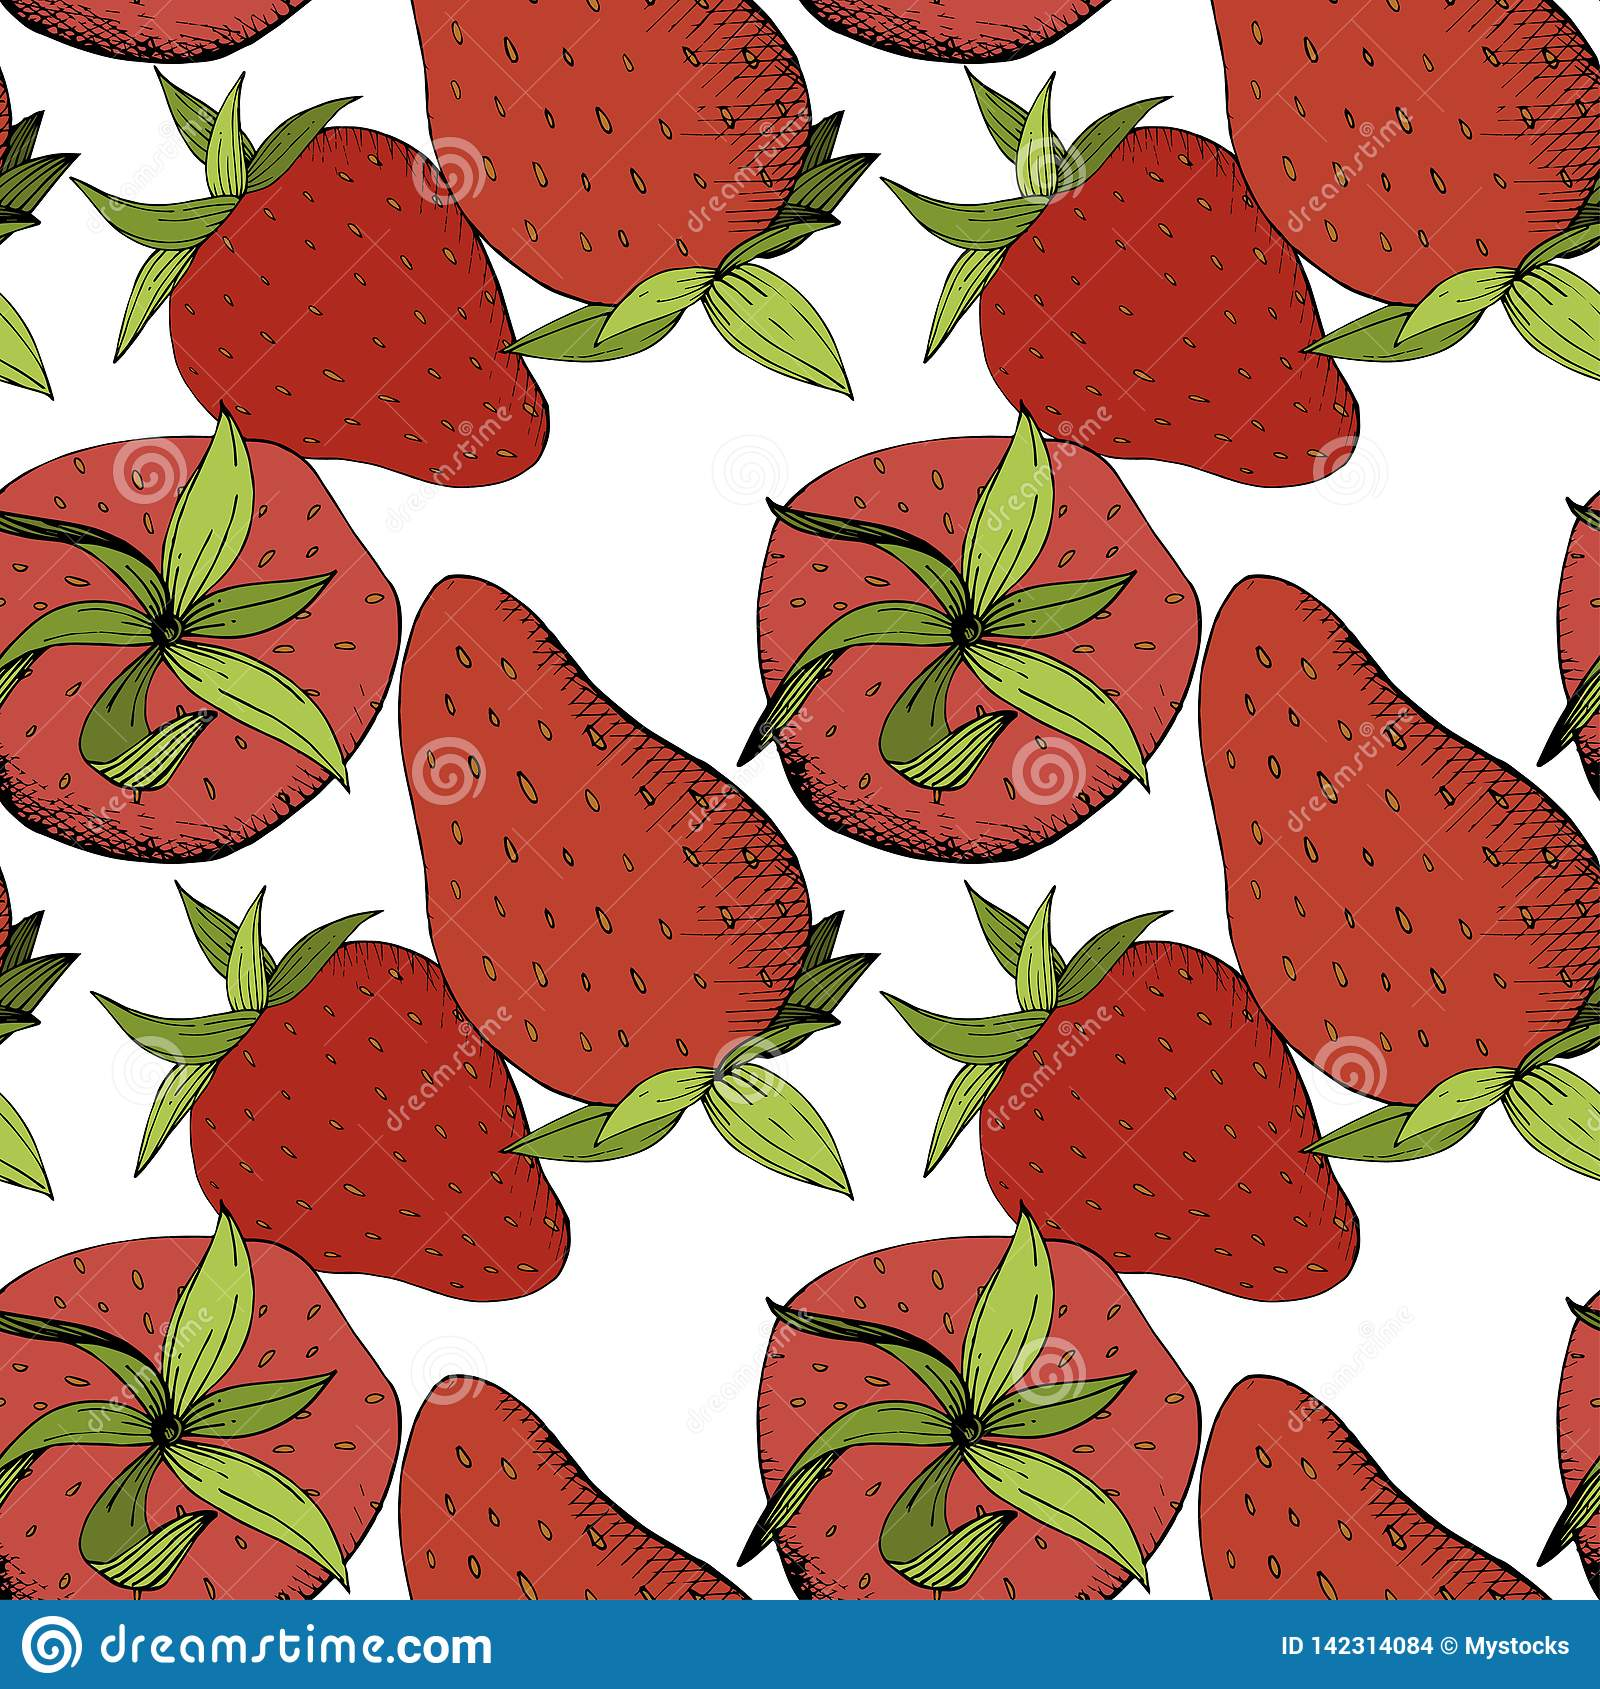 Vector Strawberry fresh fruit healthy food. Red and green engraved ink art. Seamless background pattern.